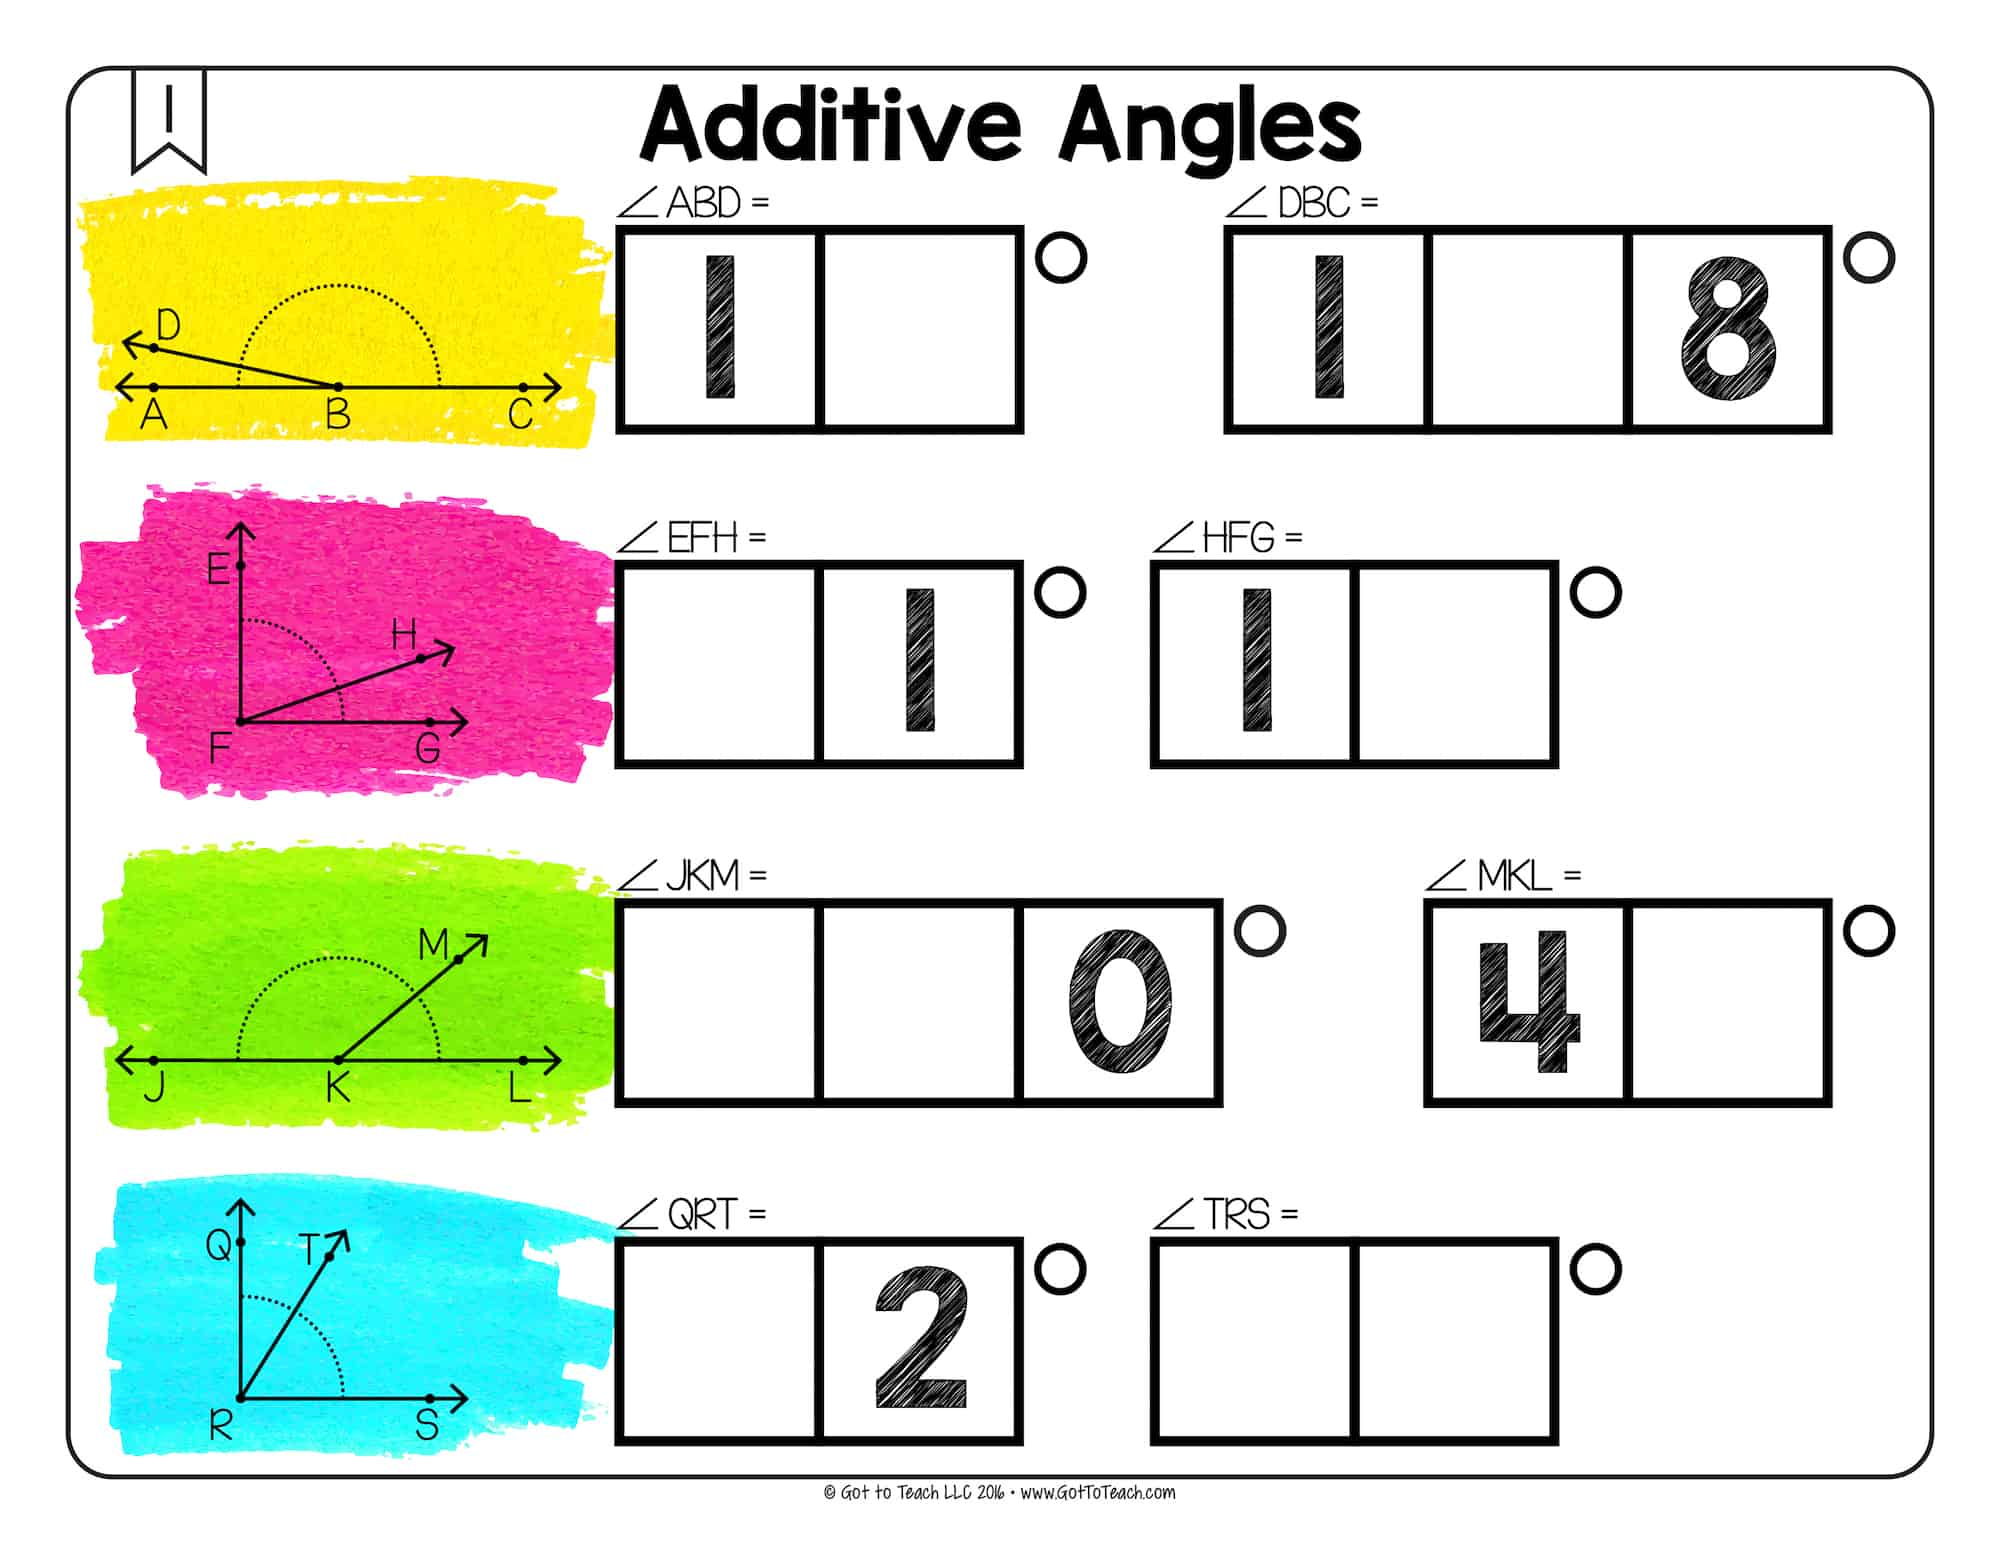 Additive Angles